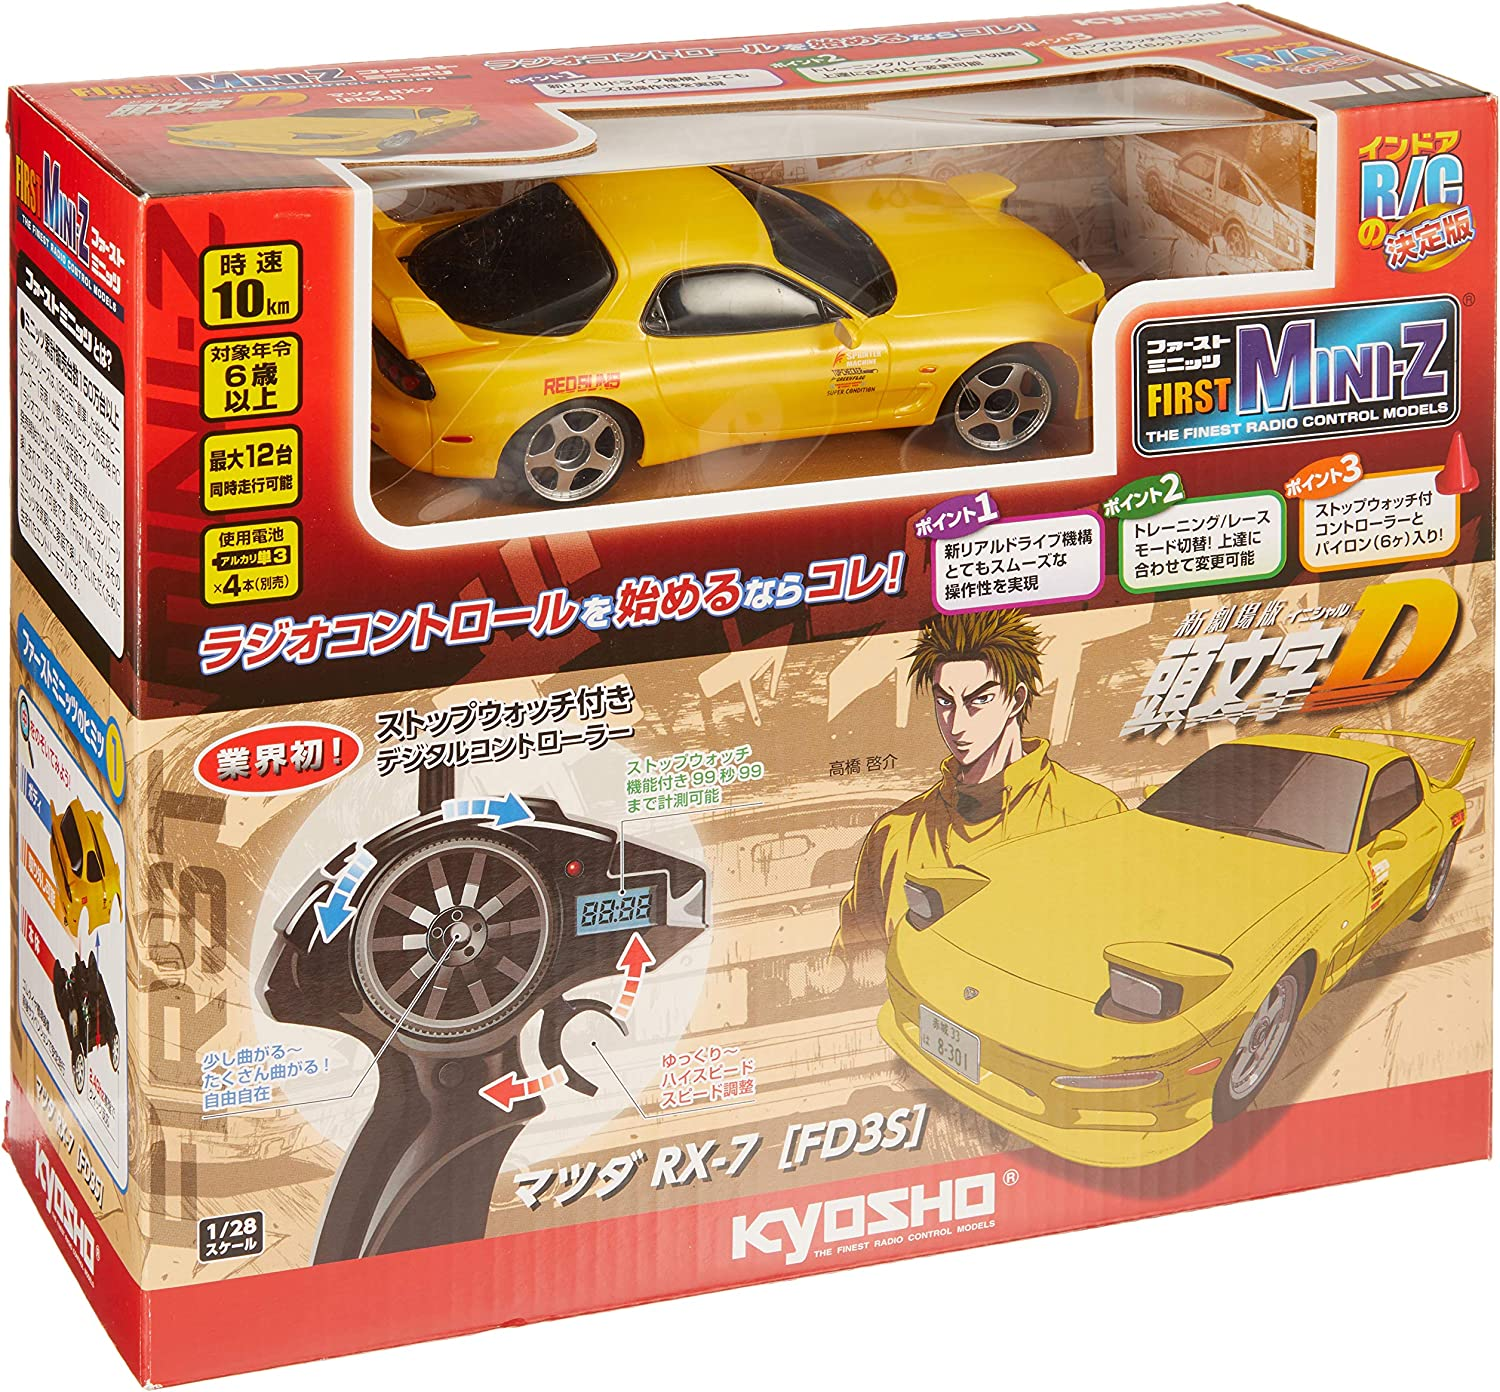 Initial D Kyosho Radio Control Electric Touring Car First Mini-Z 頭文字D T